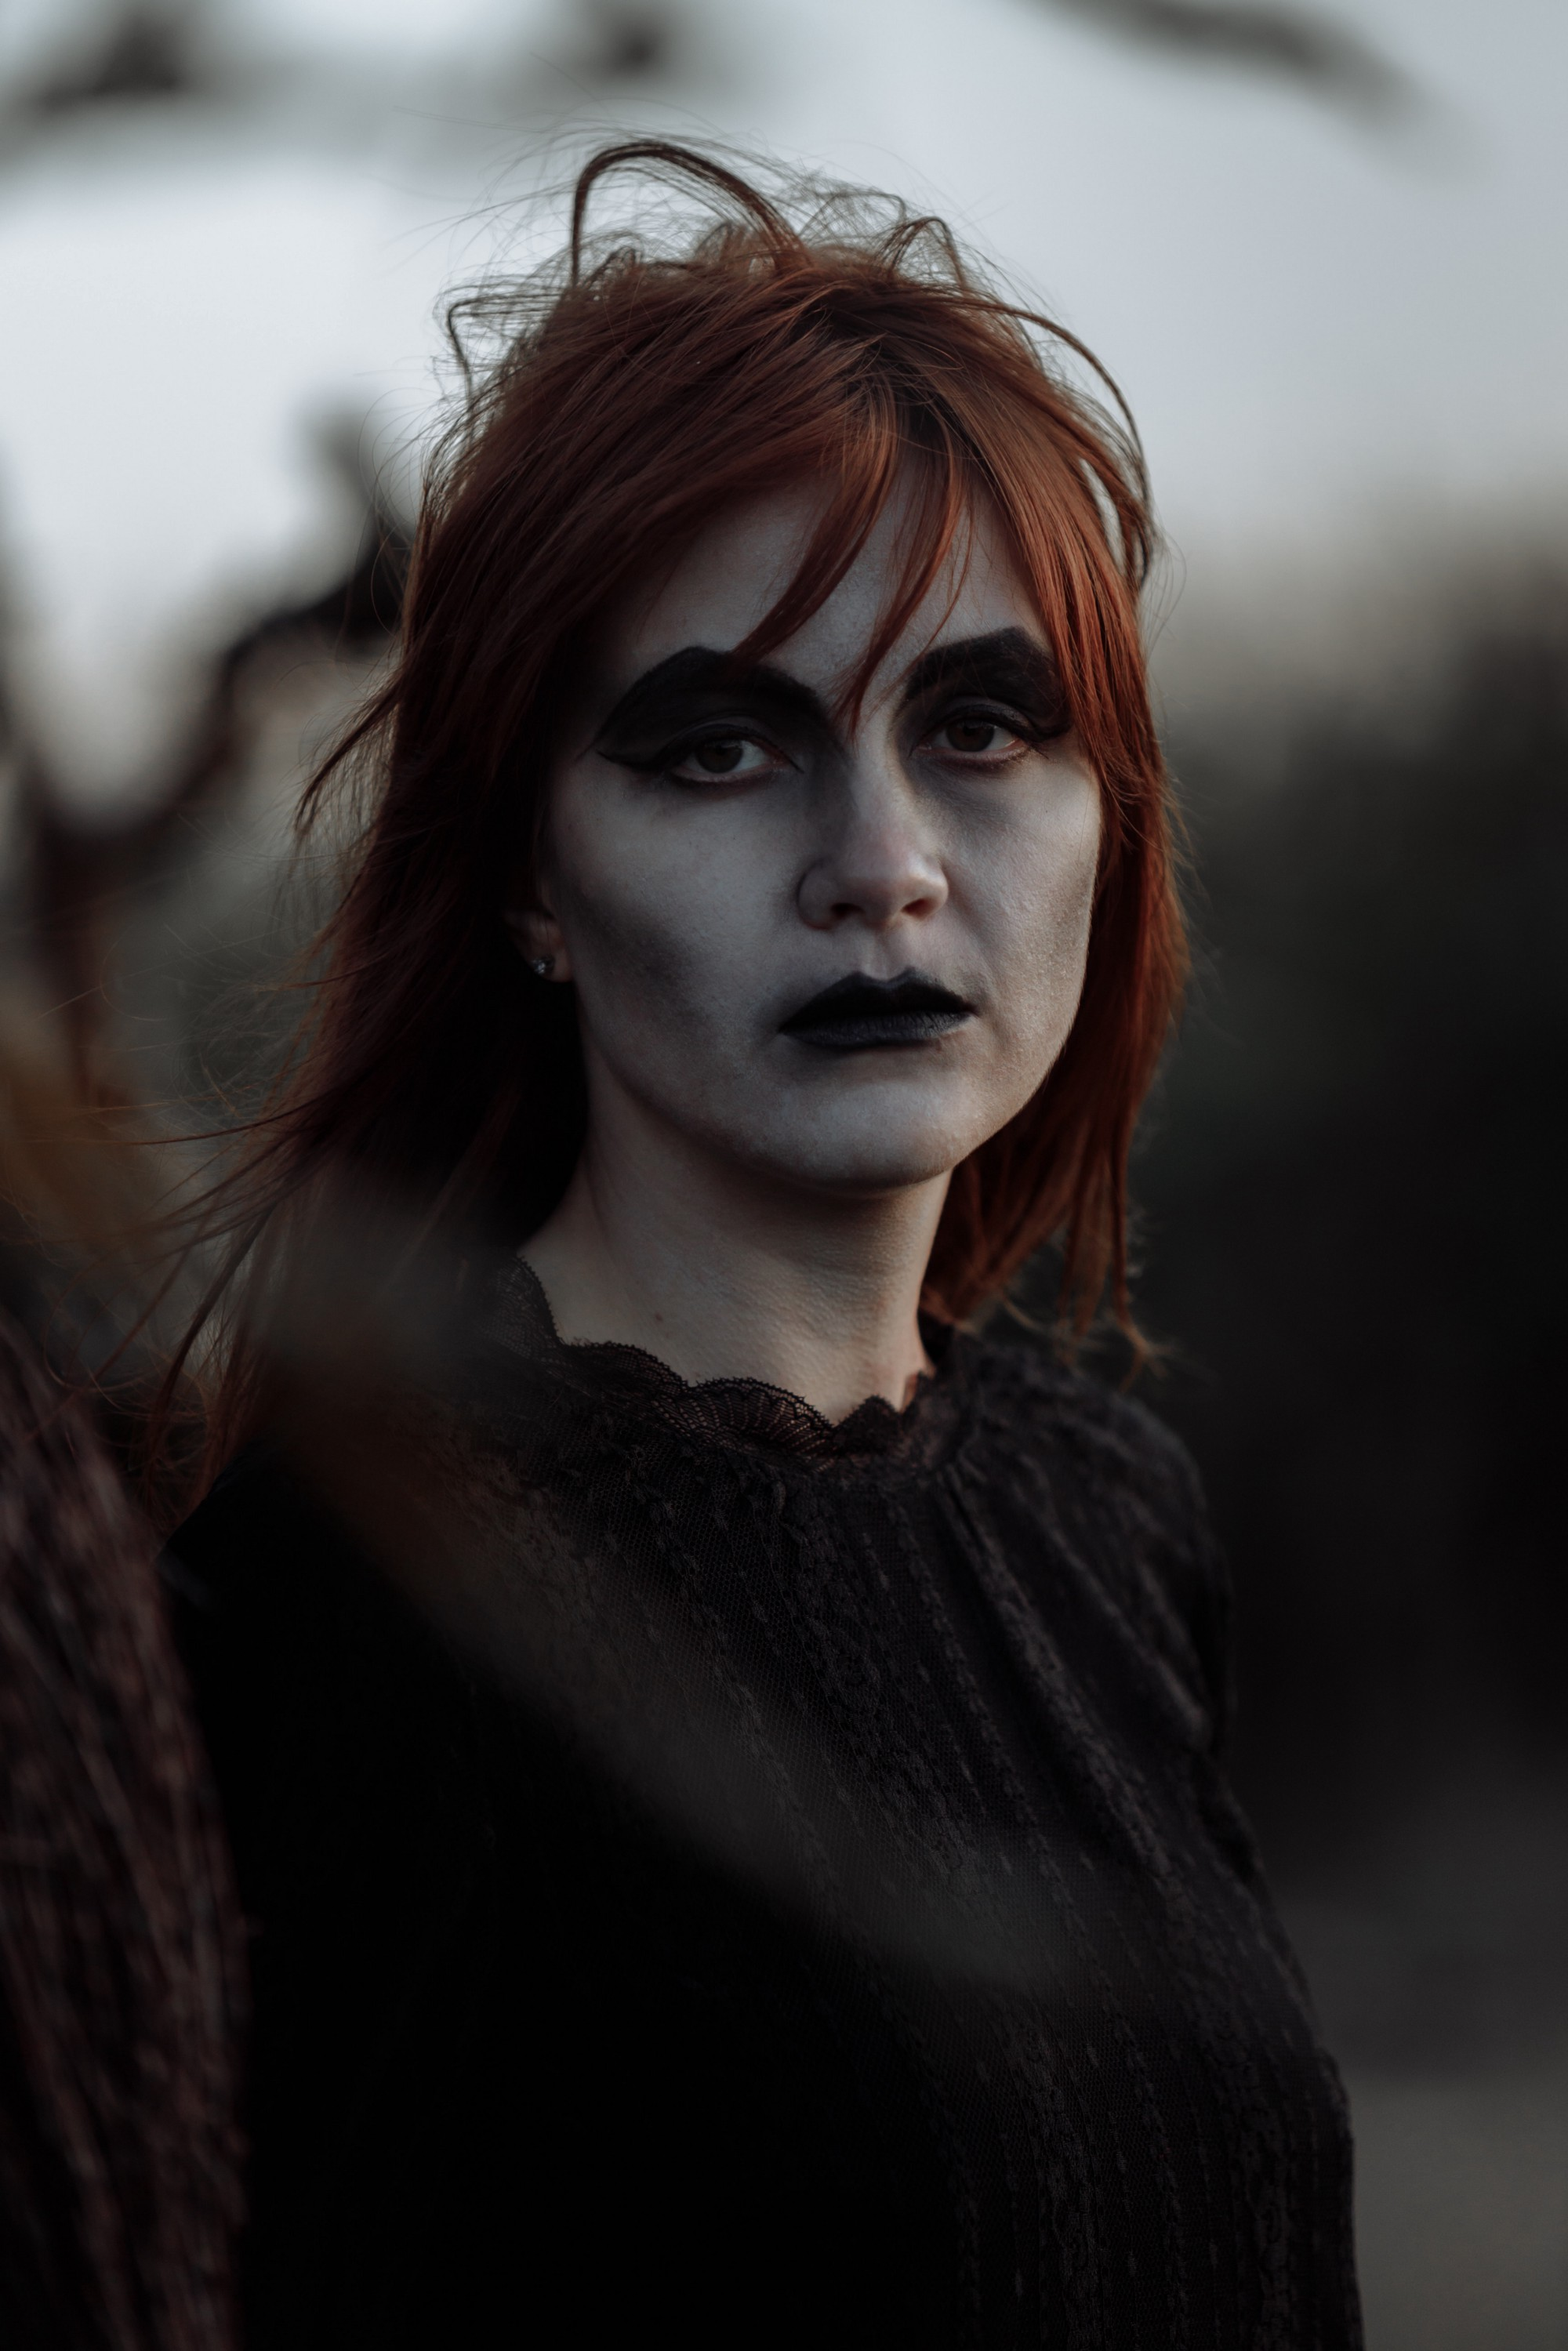 A female Zombie dressed in black with red hair.